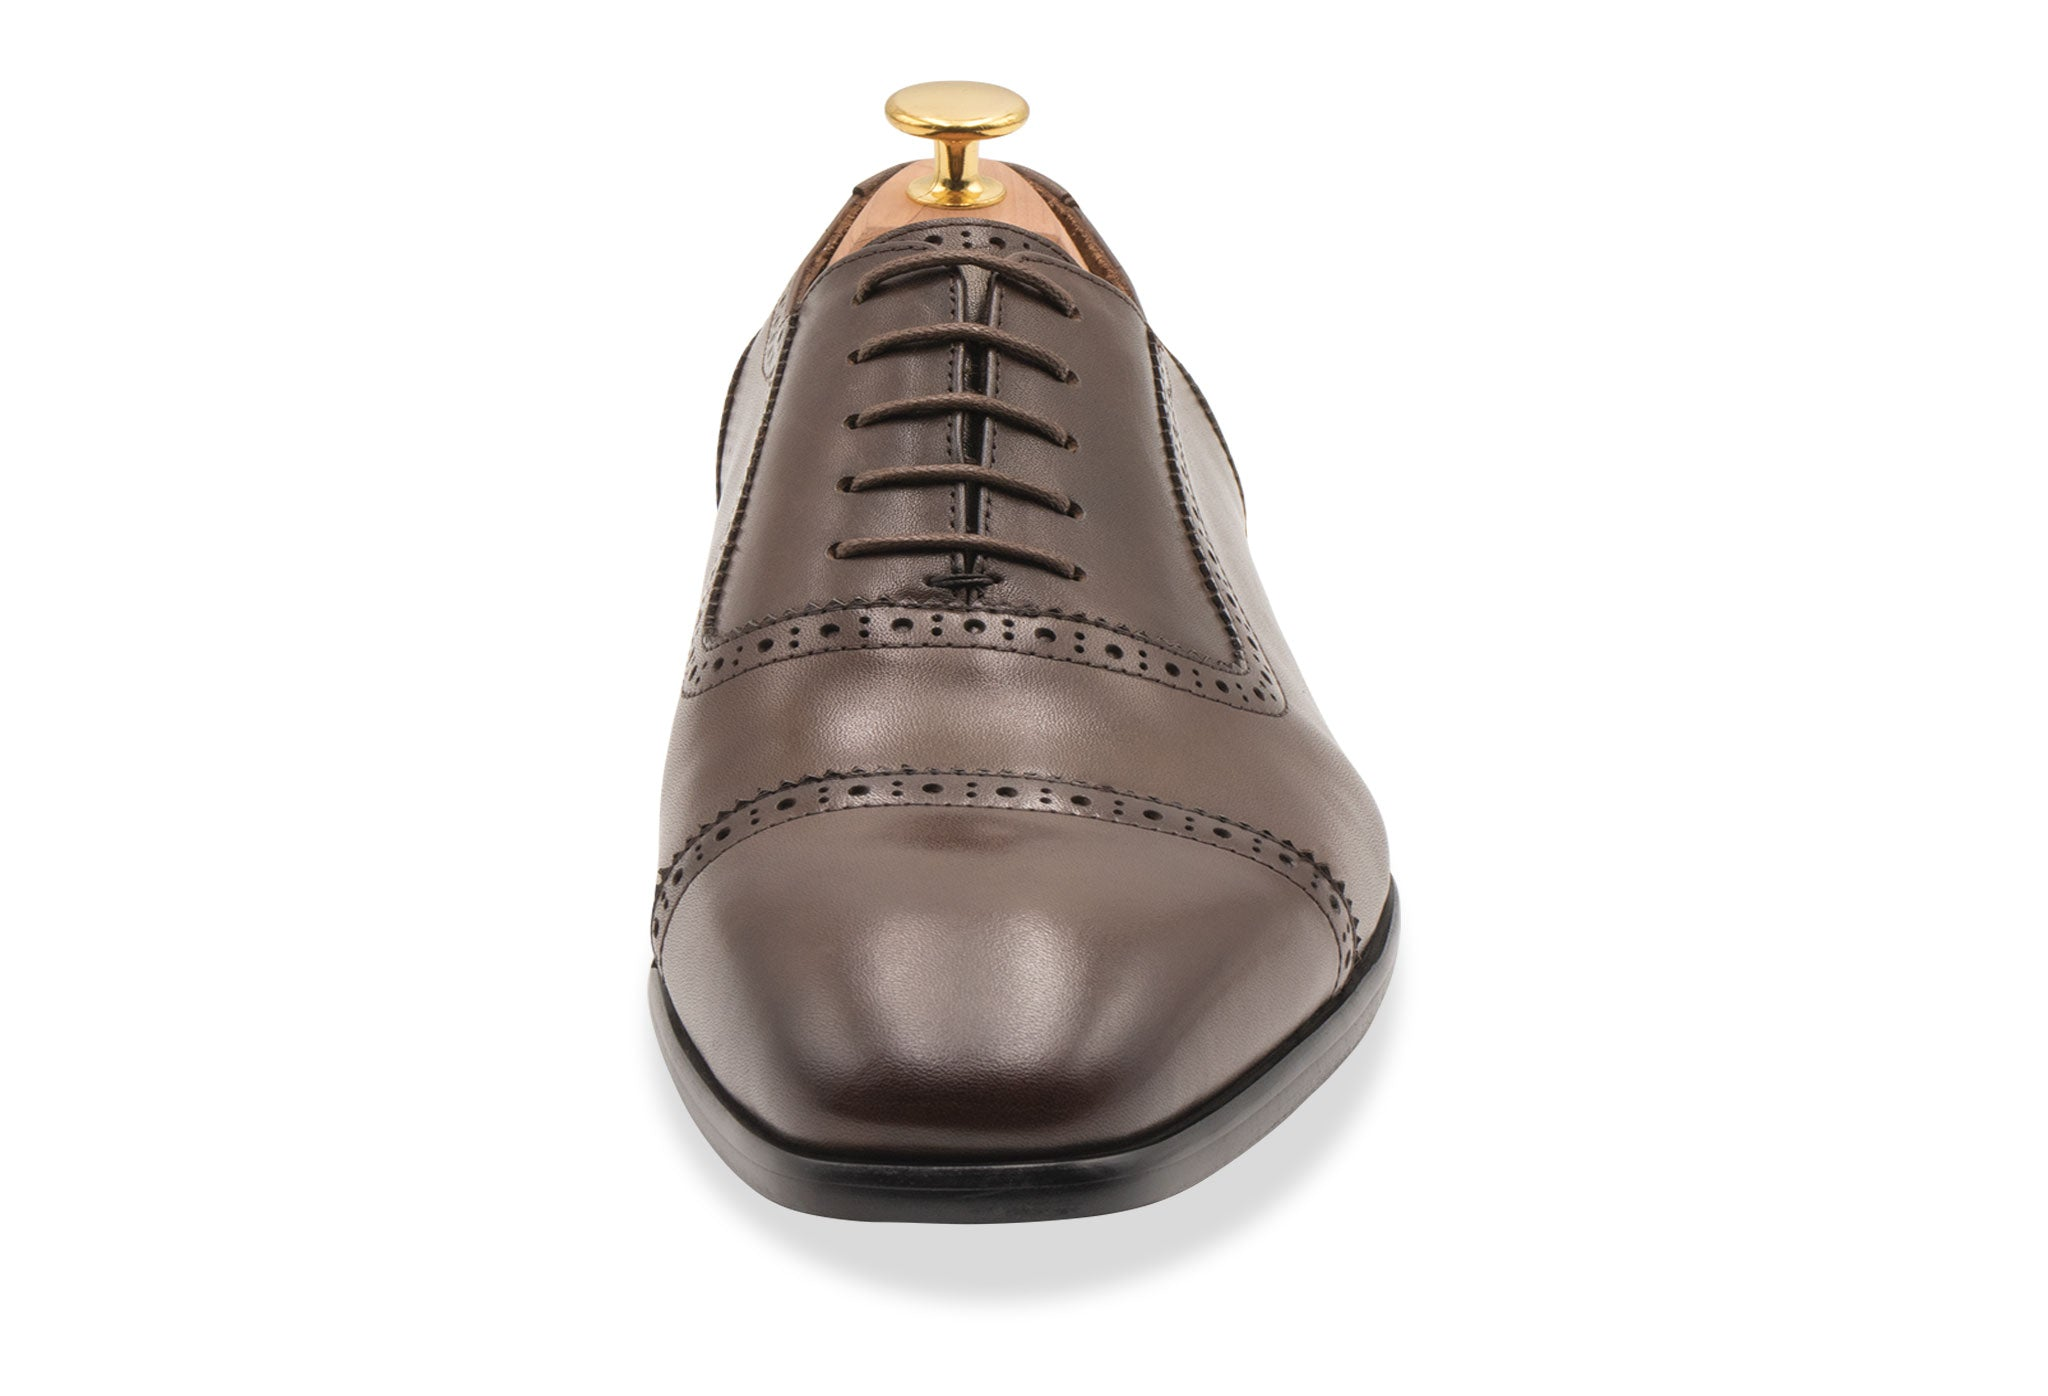 Tartagal Straight Cap Walnut Oxford